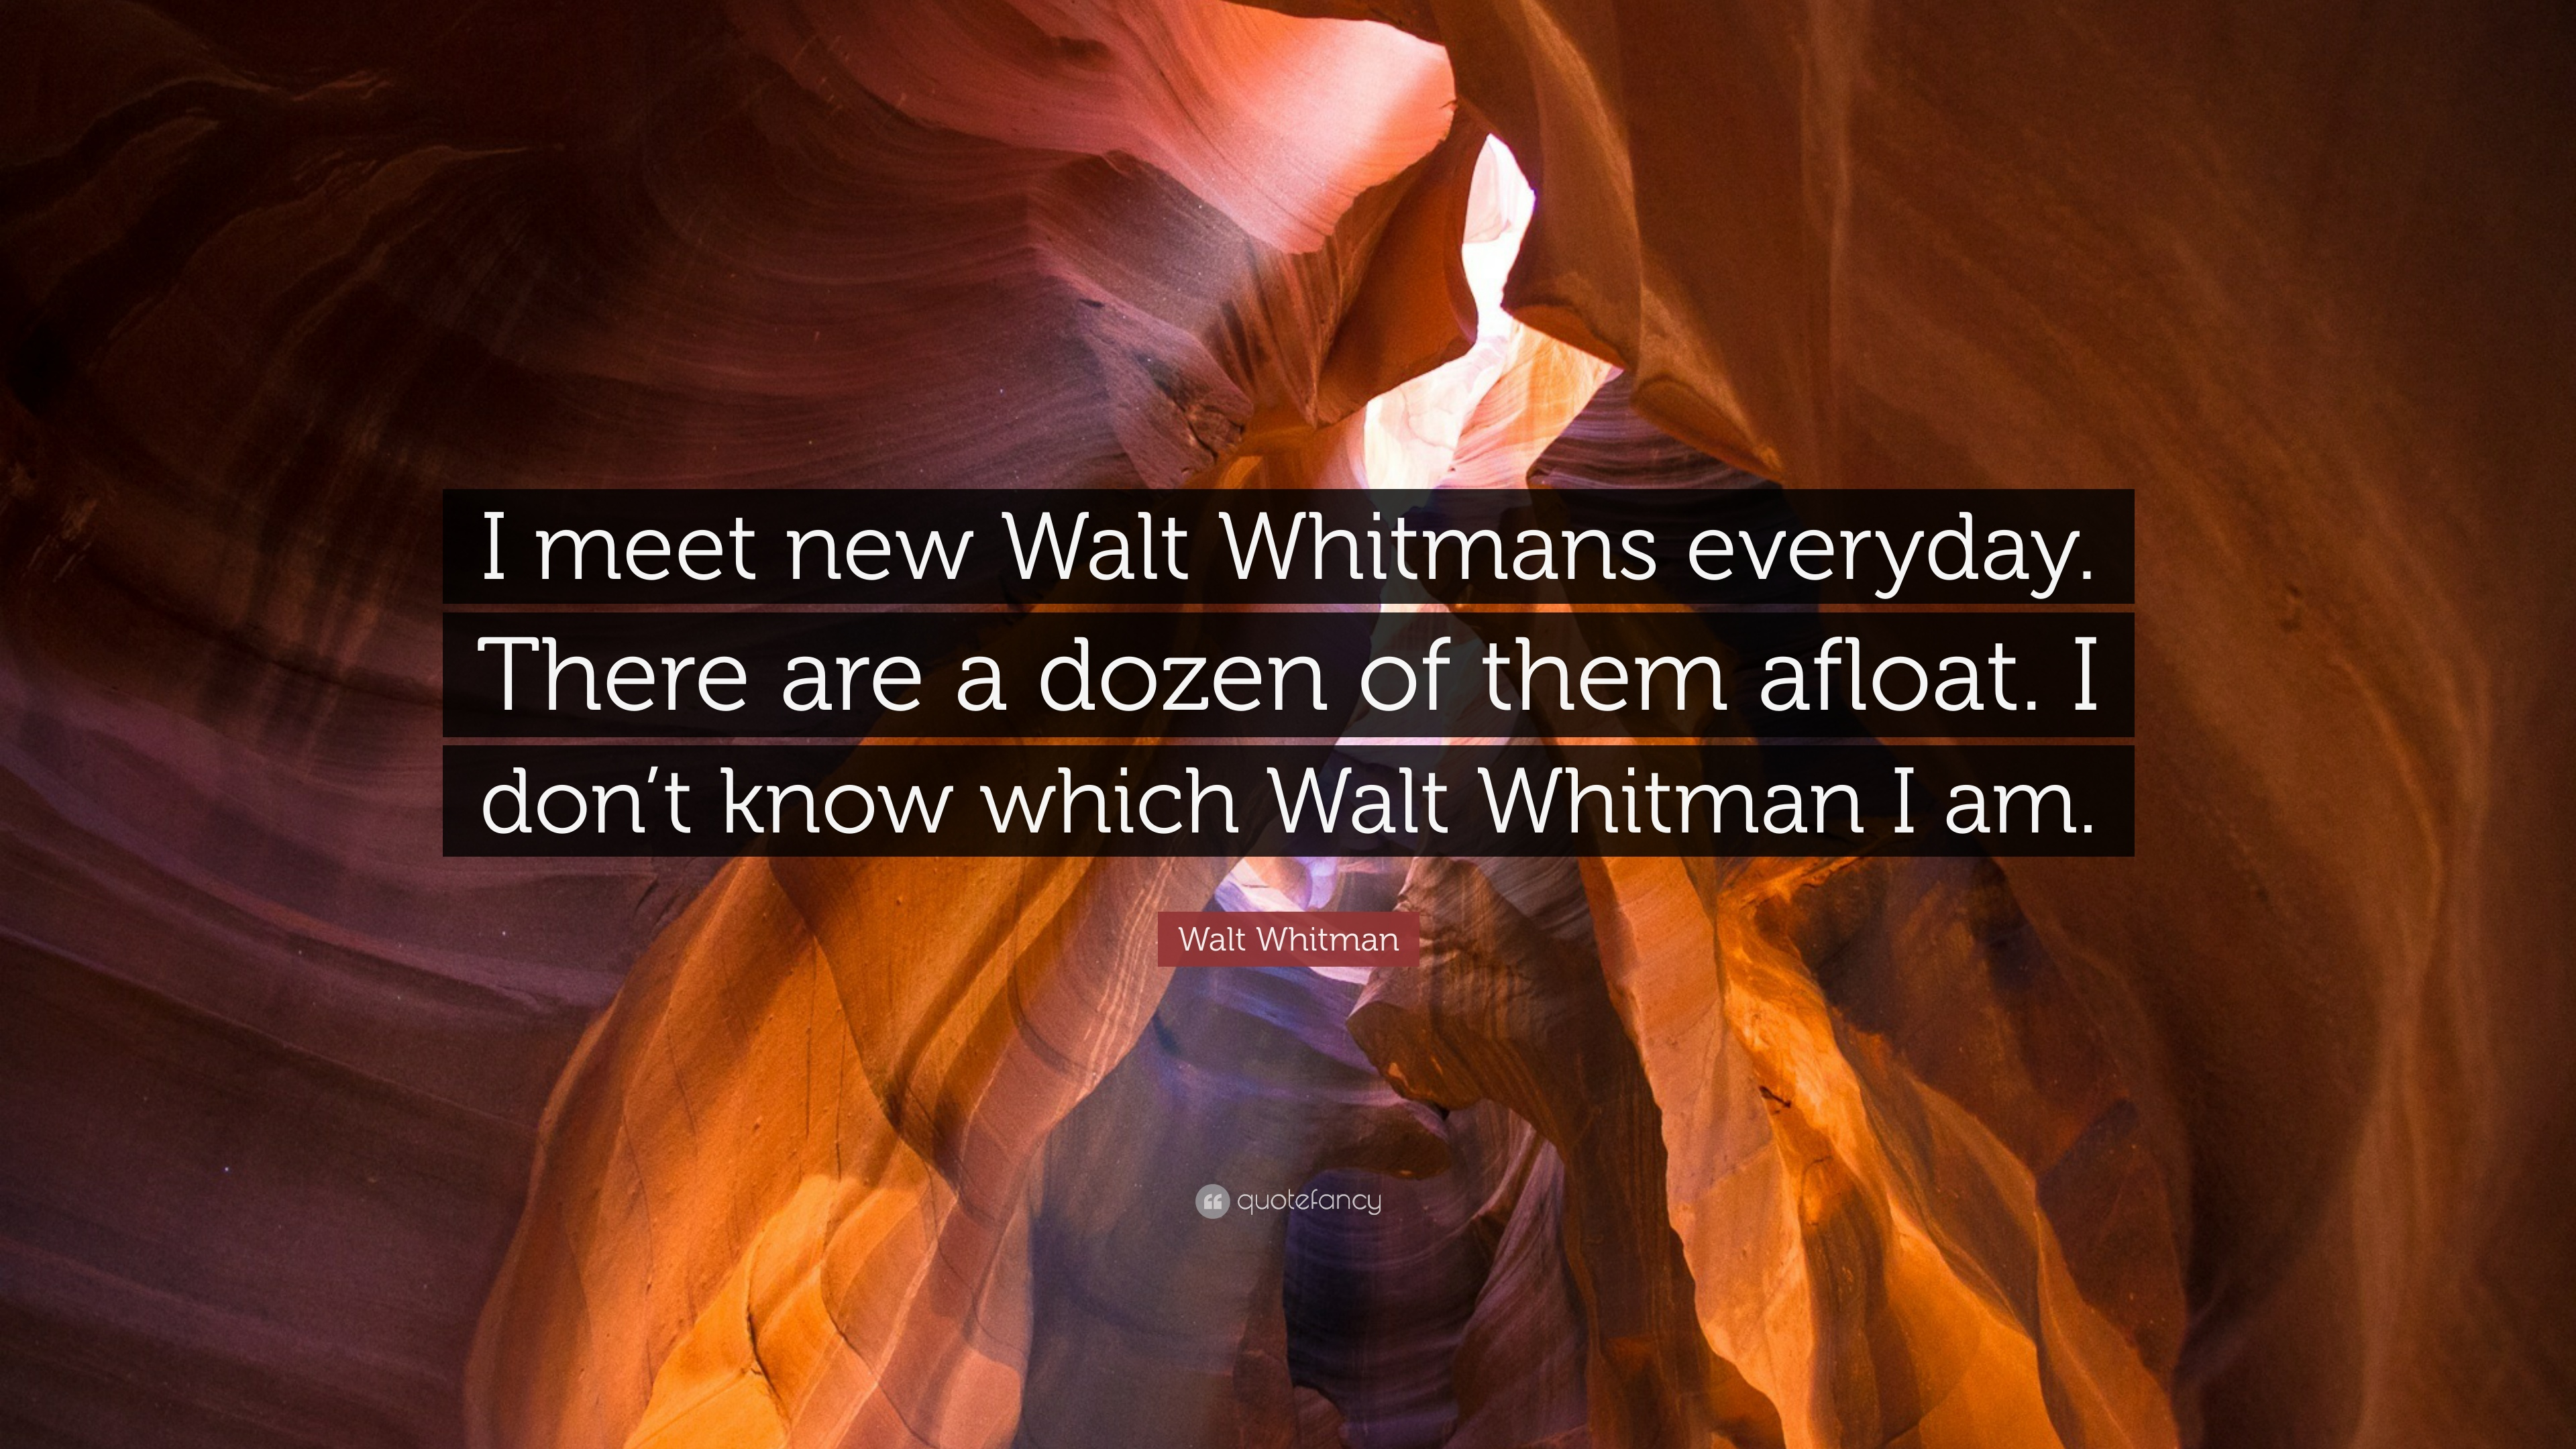 ... are a dozen of them afloat. I don?t know which Walt Whitman I am